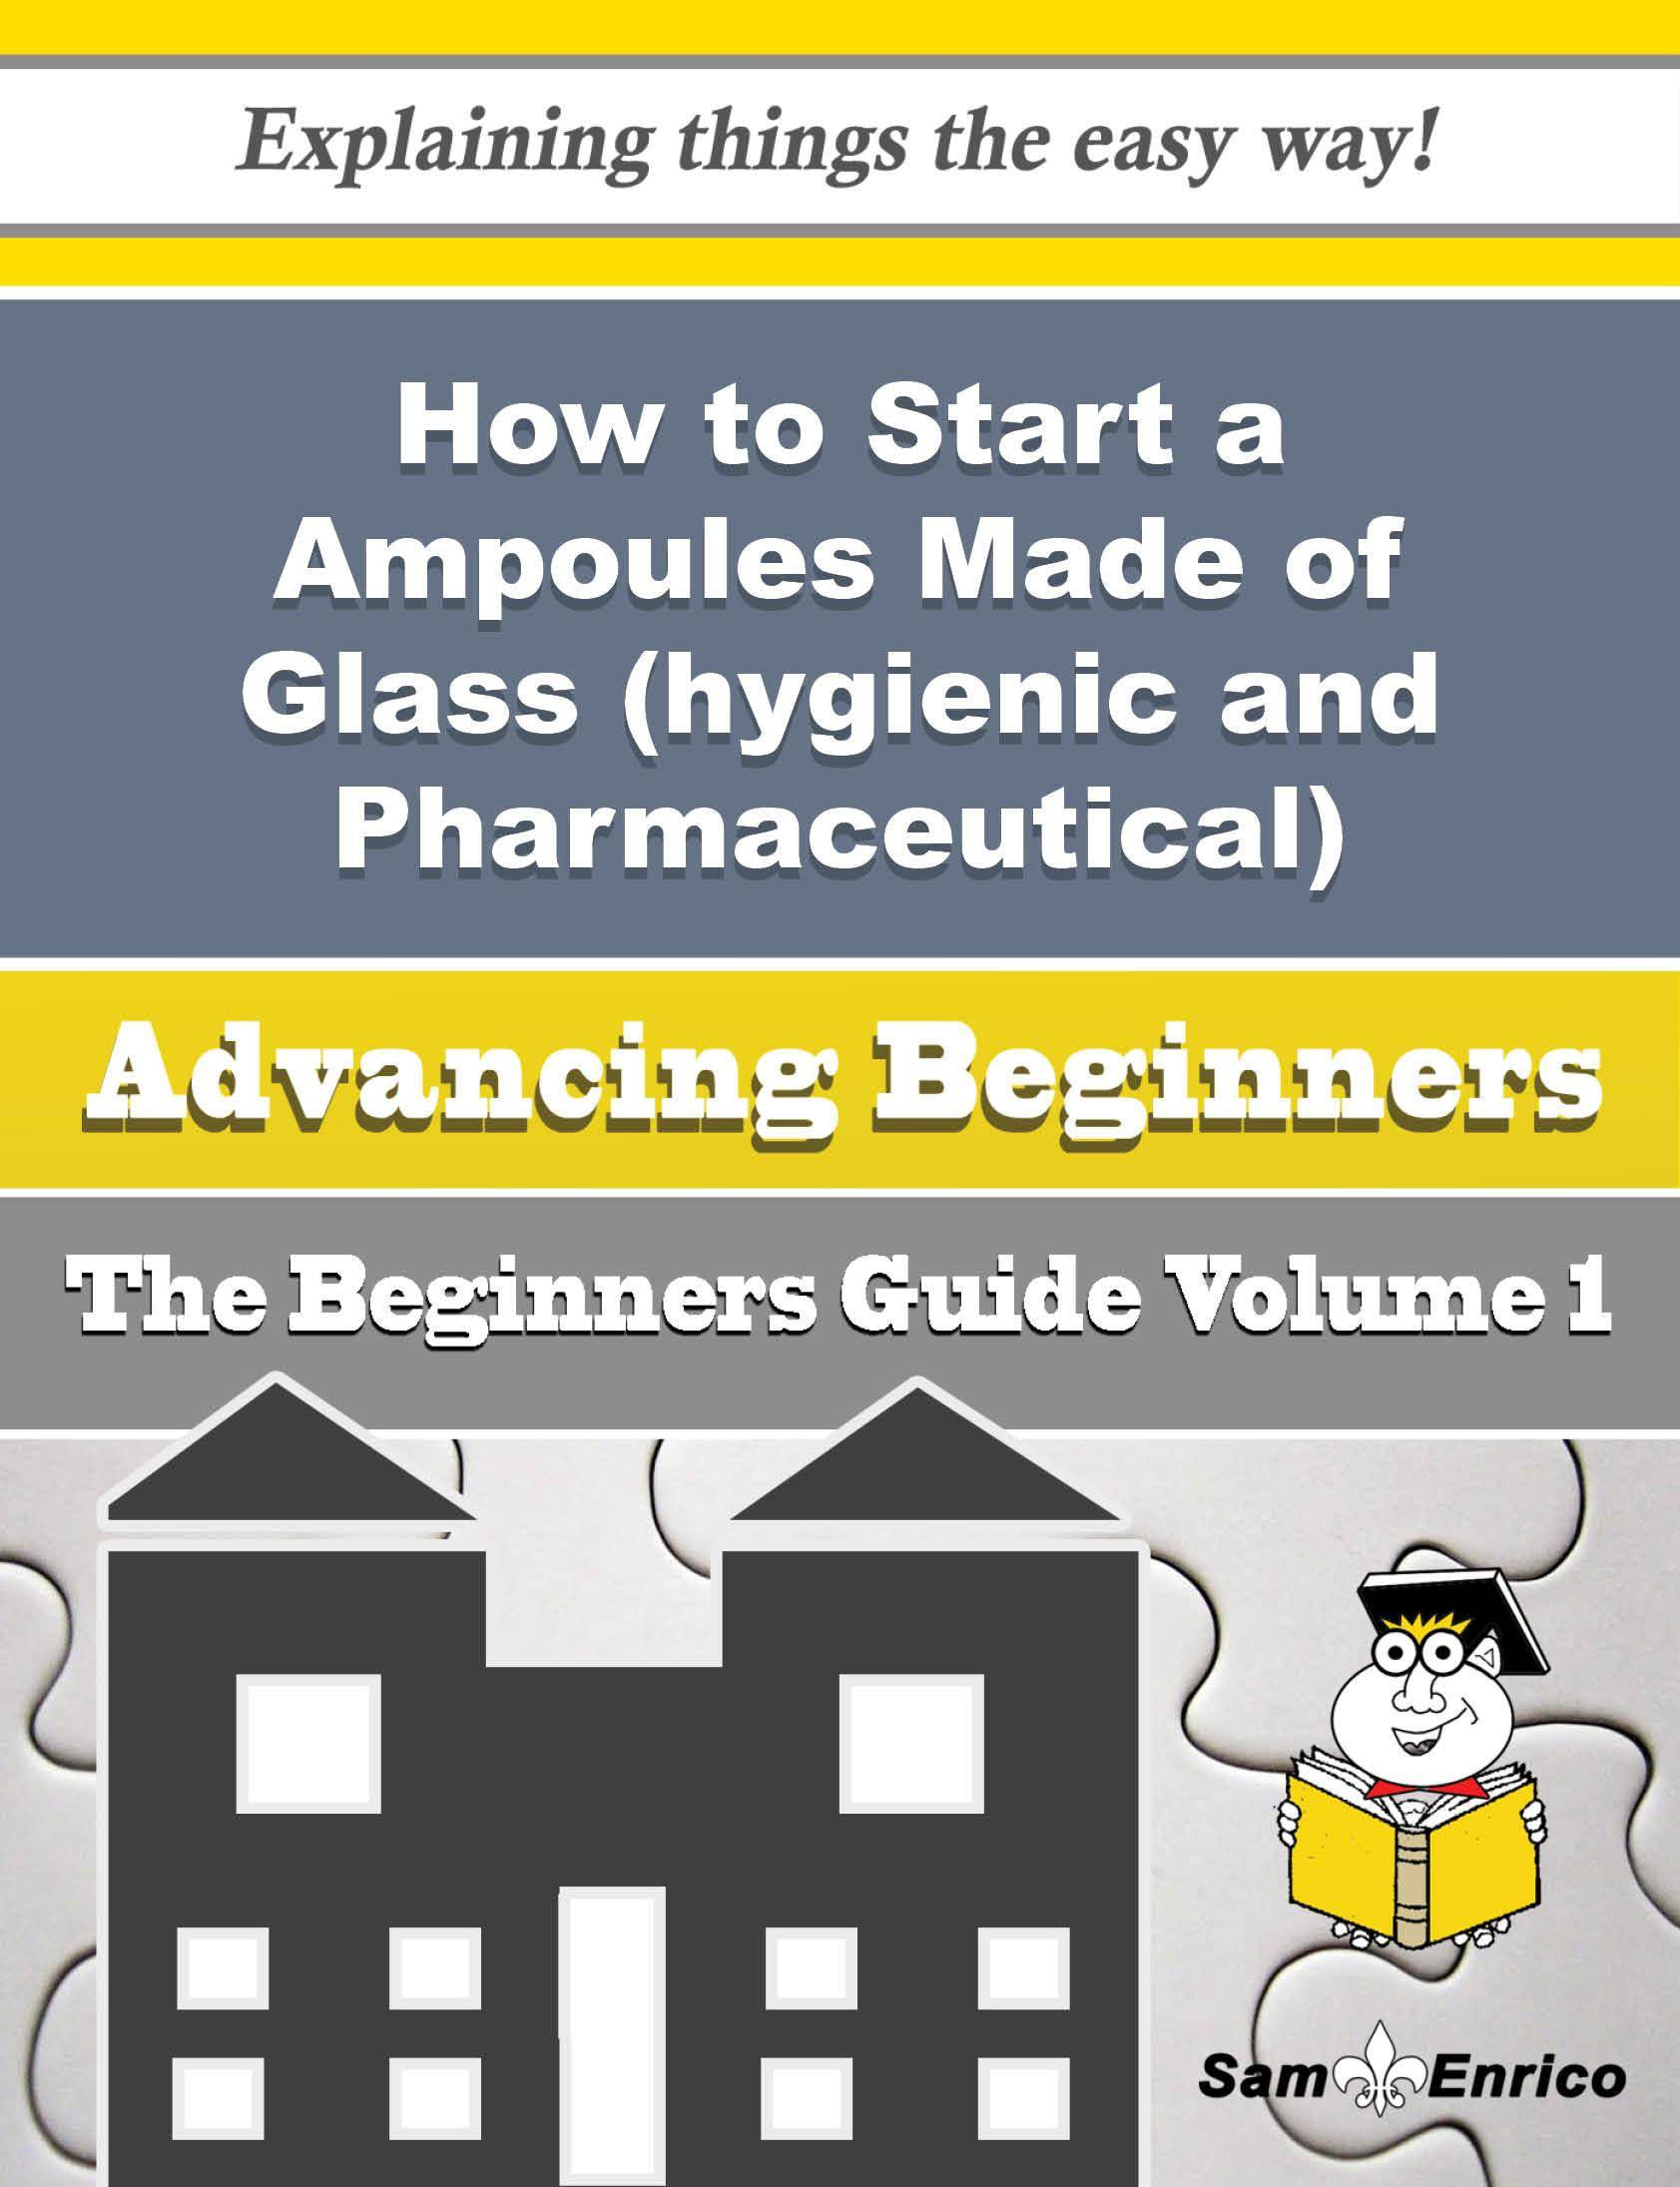 How to Start a Ampoules Made of Glass (hygienic and Pharmaceutical) Business (Beginners Guide)